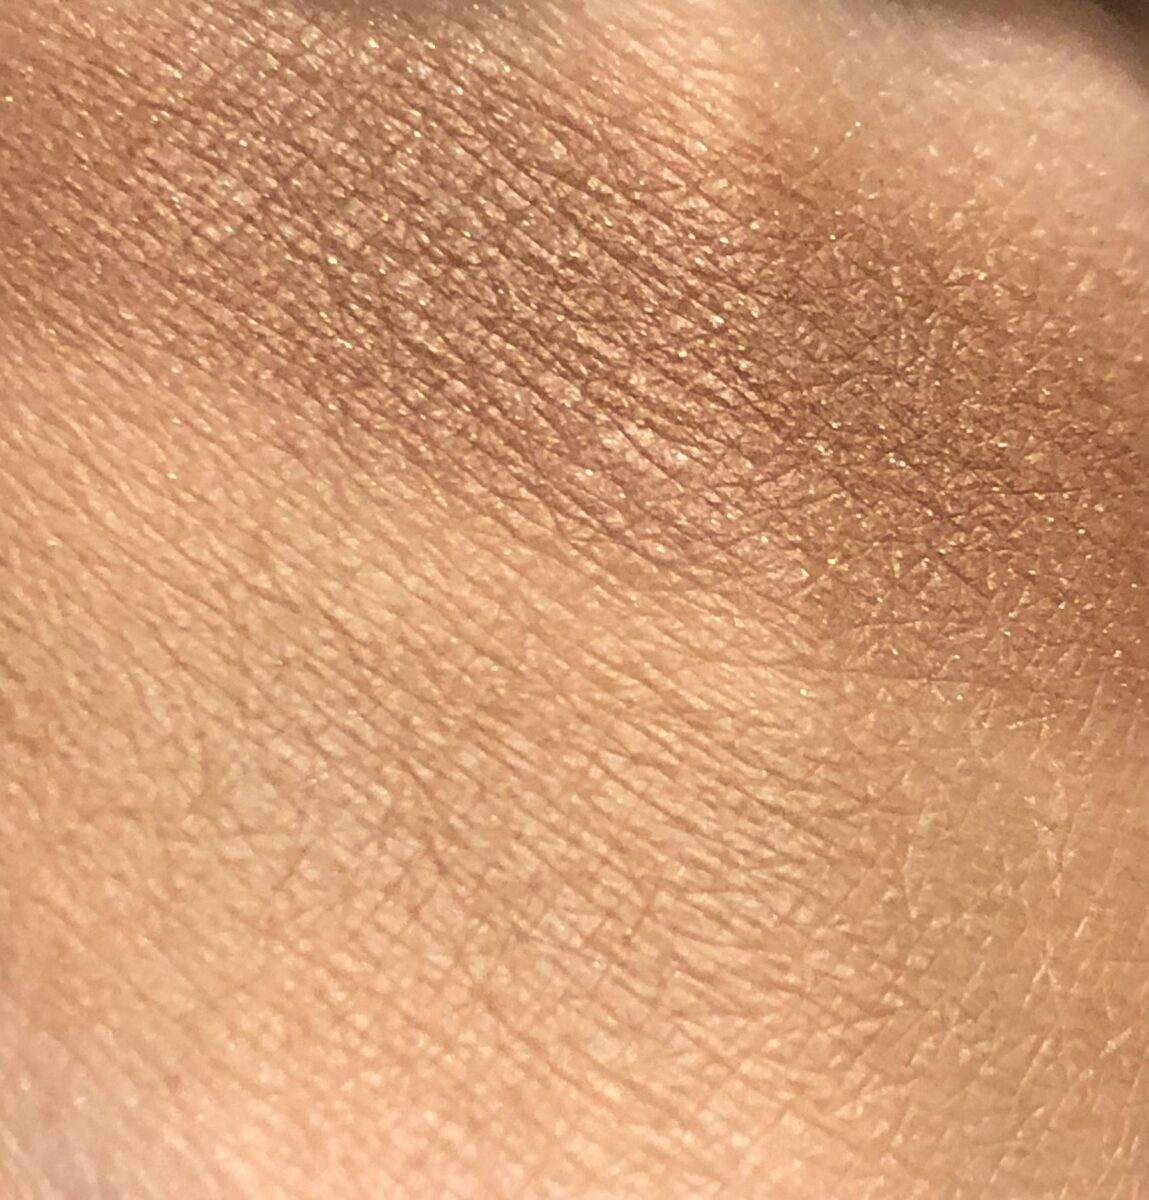 SURRATT BEYOND BEIGE EYESHADOW PALETTE SWATCHES CUIVRE ON THE TOP, AND GREIGE ON THE BOTTOM